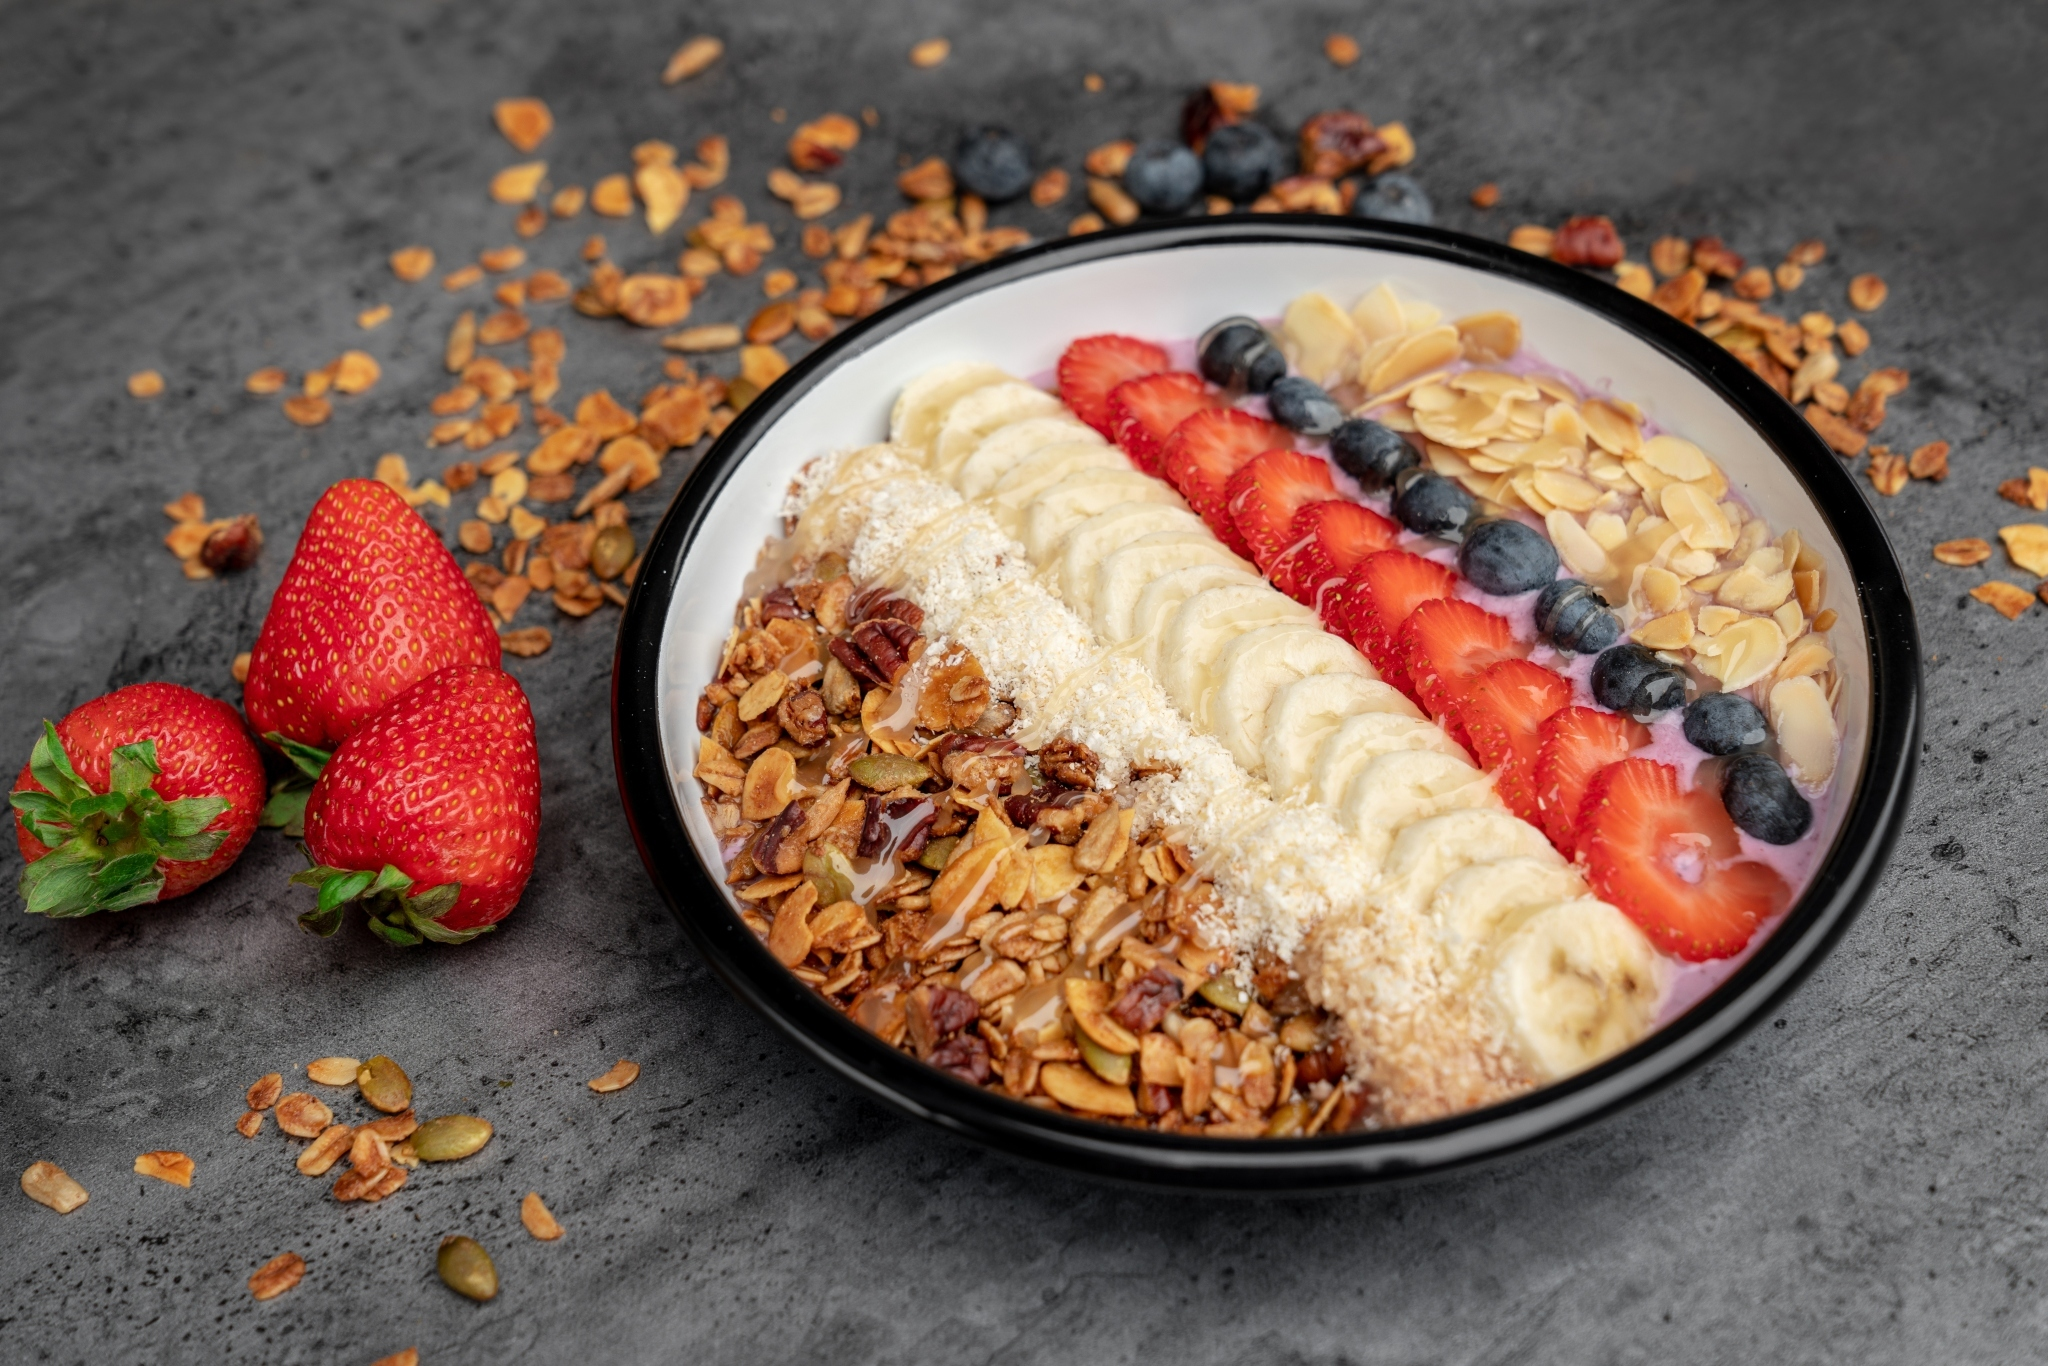 Best açaí and smoothie bowls in Hong Kong